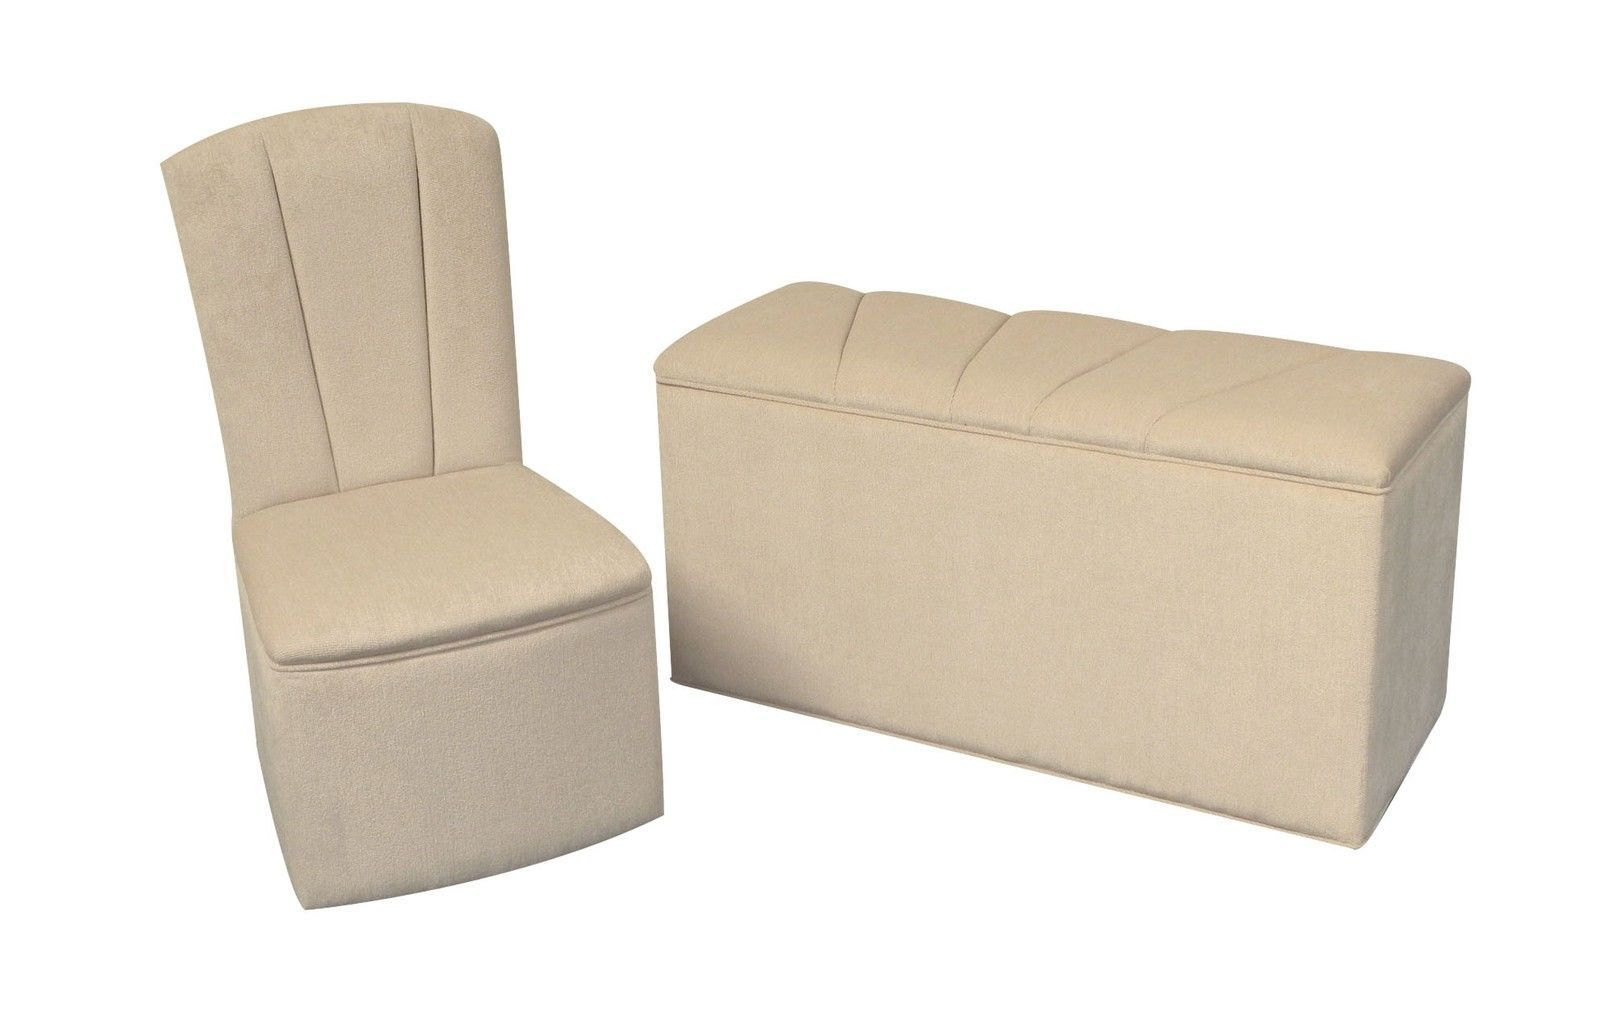 bedroom chair with ottoman elegant vanity chairs designer set in light beige chenille